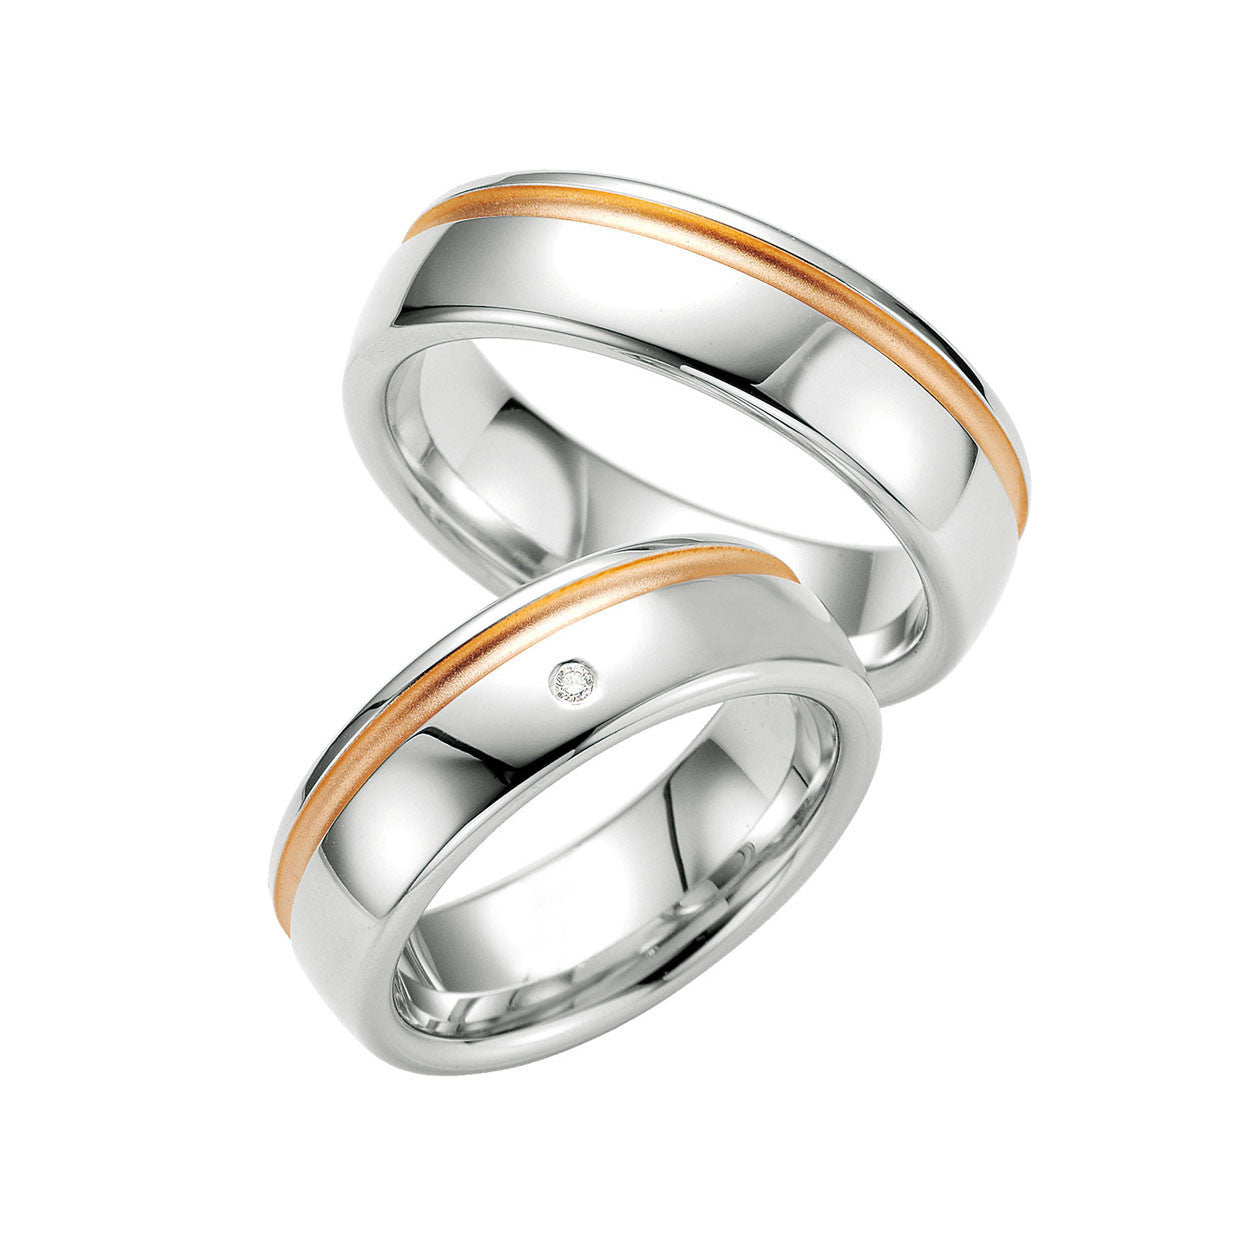 jewellery by shop product ring is band from upscale false crop editor platinum collection this the and david yurman contemporary bands gold waves subsampling wedding scale